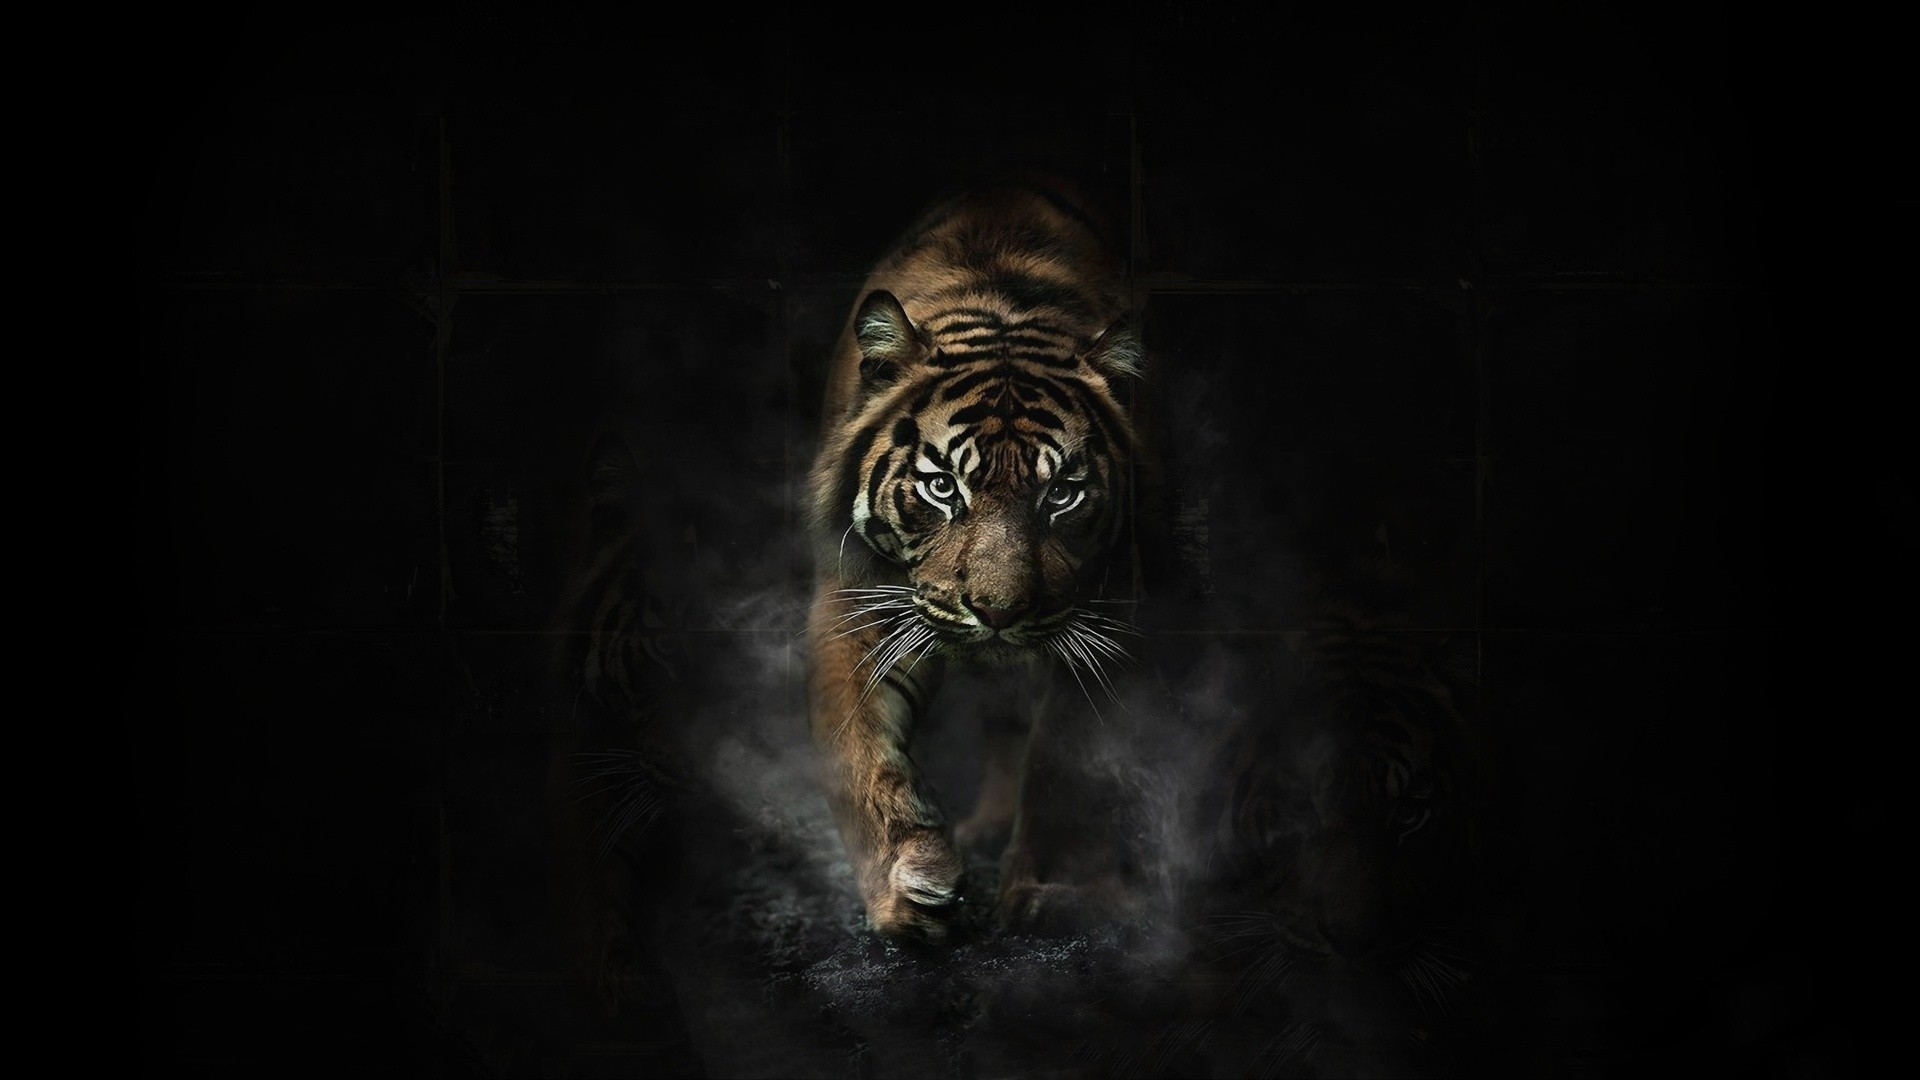 1920x1080 Tiger Wallpaper Full HD (65+ Images